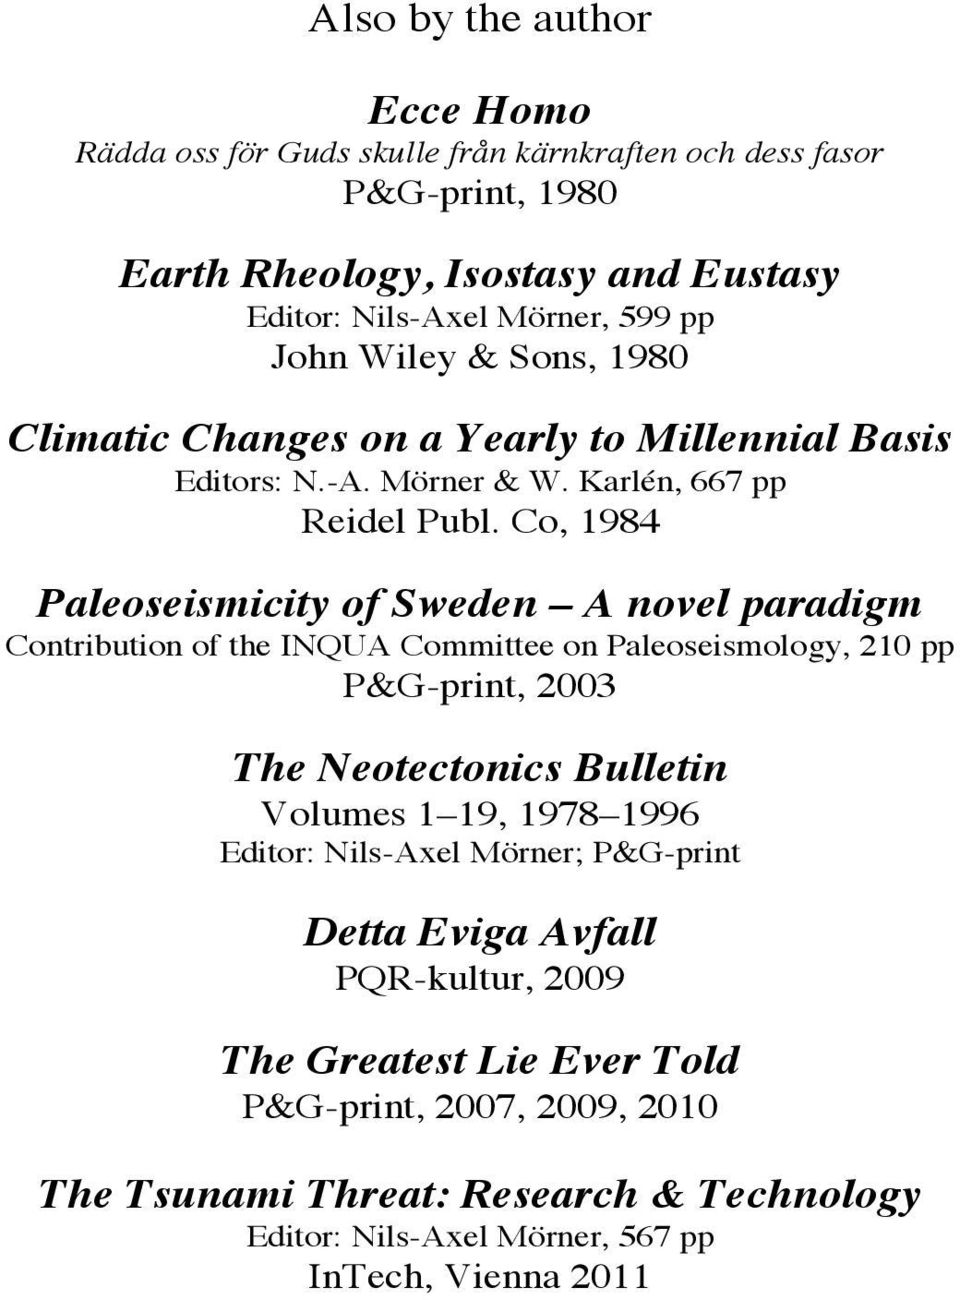 Co, 1984 Paleoseismicity of Sweden A novel paradigm Contribution of the INQUA Committee on Paleoseismology, 210 pp P&G-print, 2003 The Neotectonics Bulletin Volumes 1 19, 1978